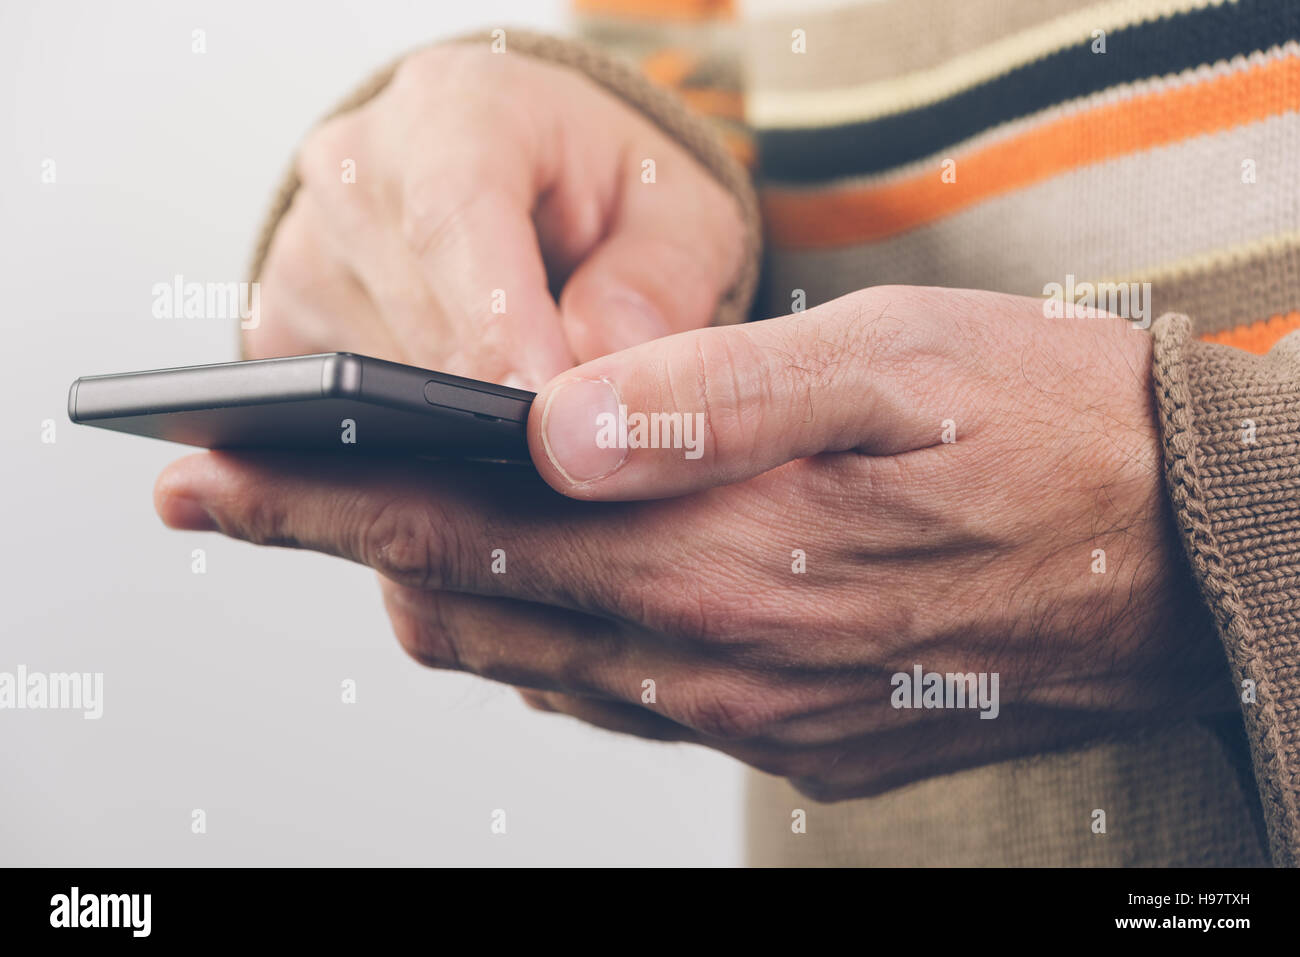 Using mobile phone for texting SMS message - Stock Image